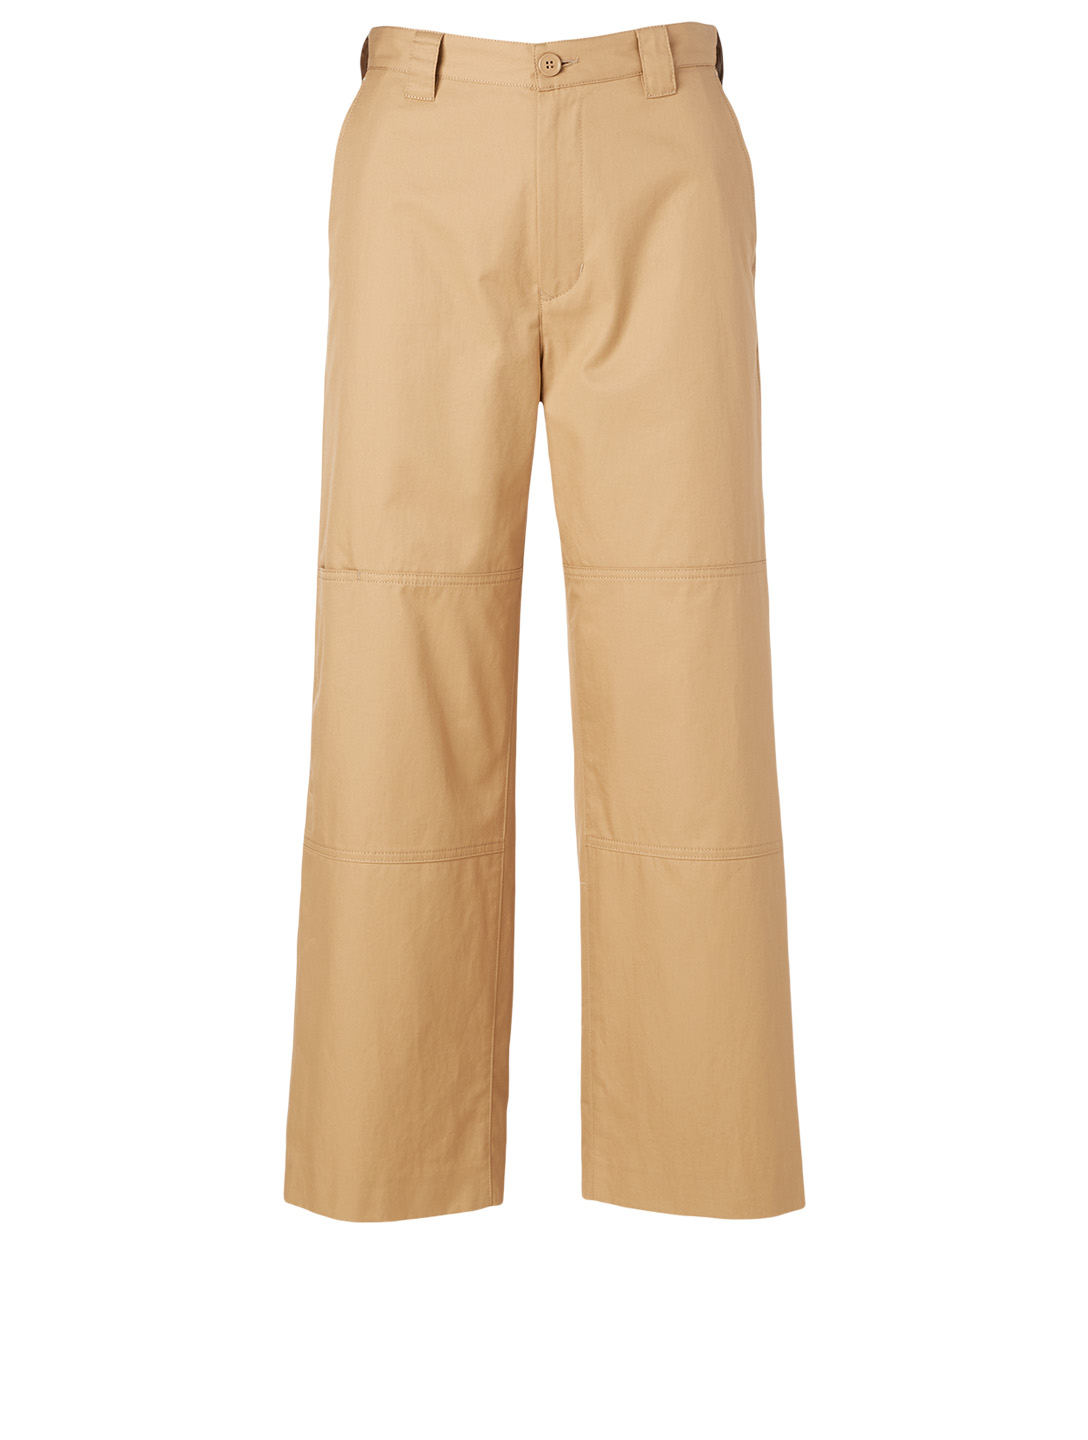 MM6 MAISON MARGIELA Cotton Cargo Pants Women's Beige